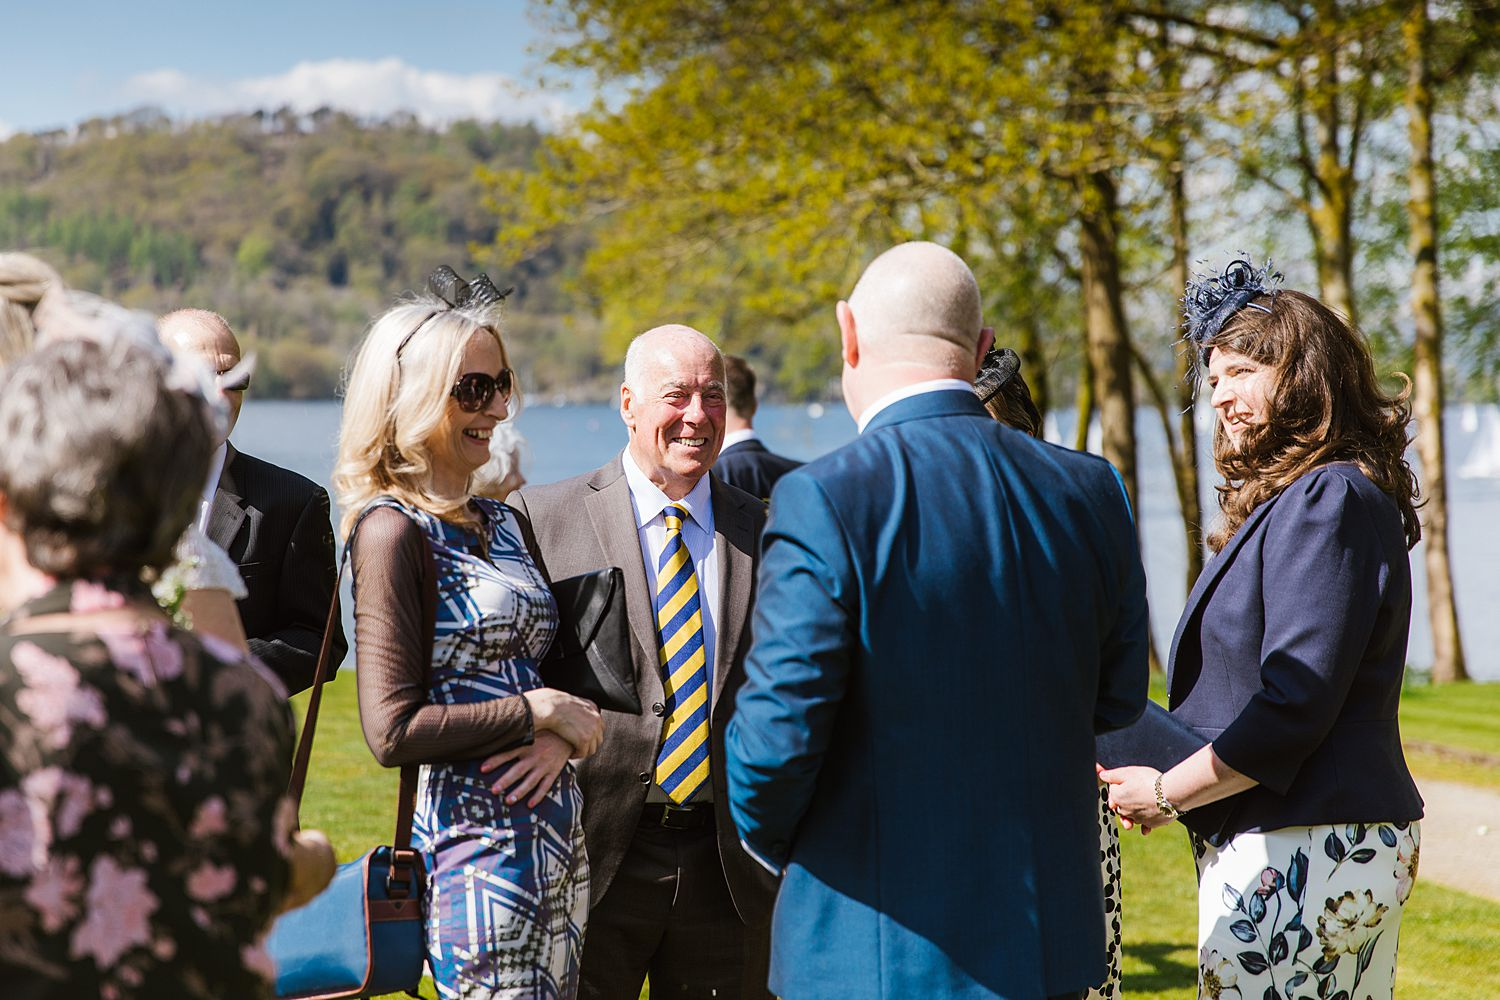 Groom chatting with guests at outdoor wedding reception, at Storrs Hall in Lake District